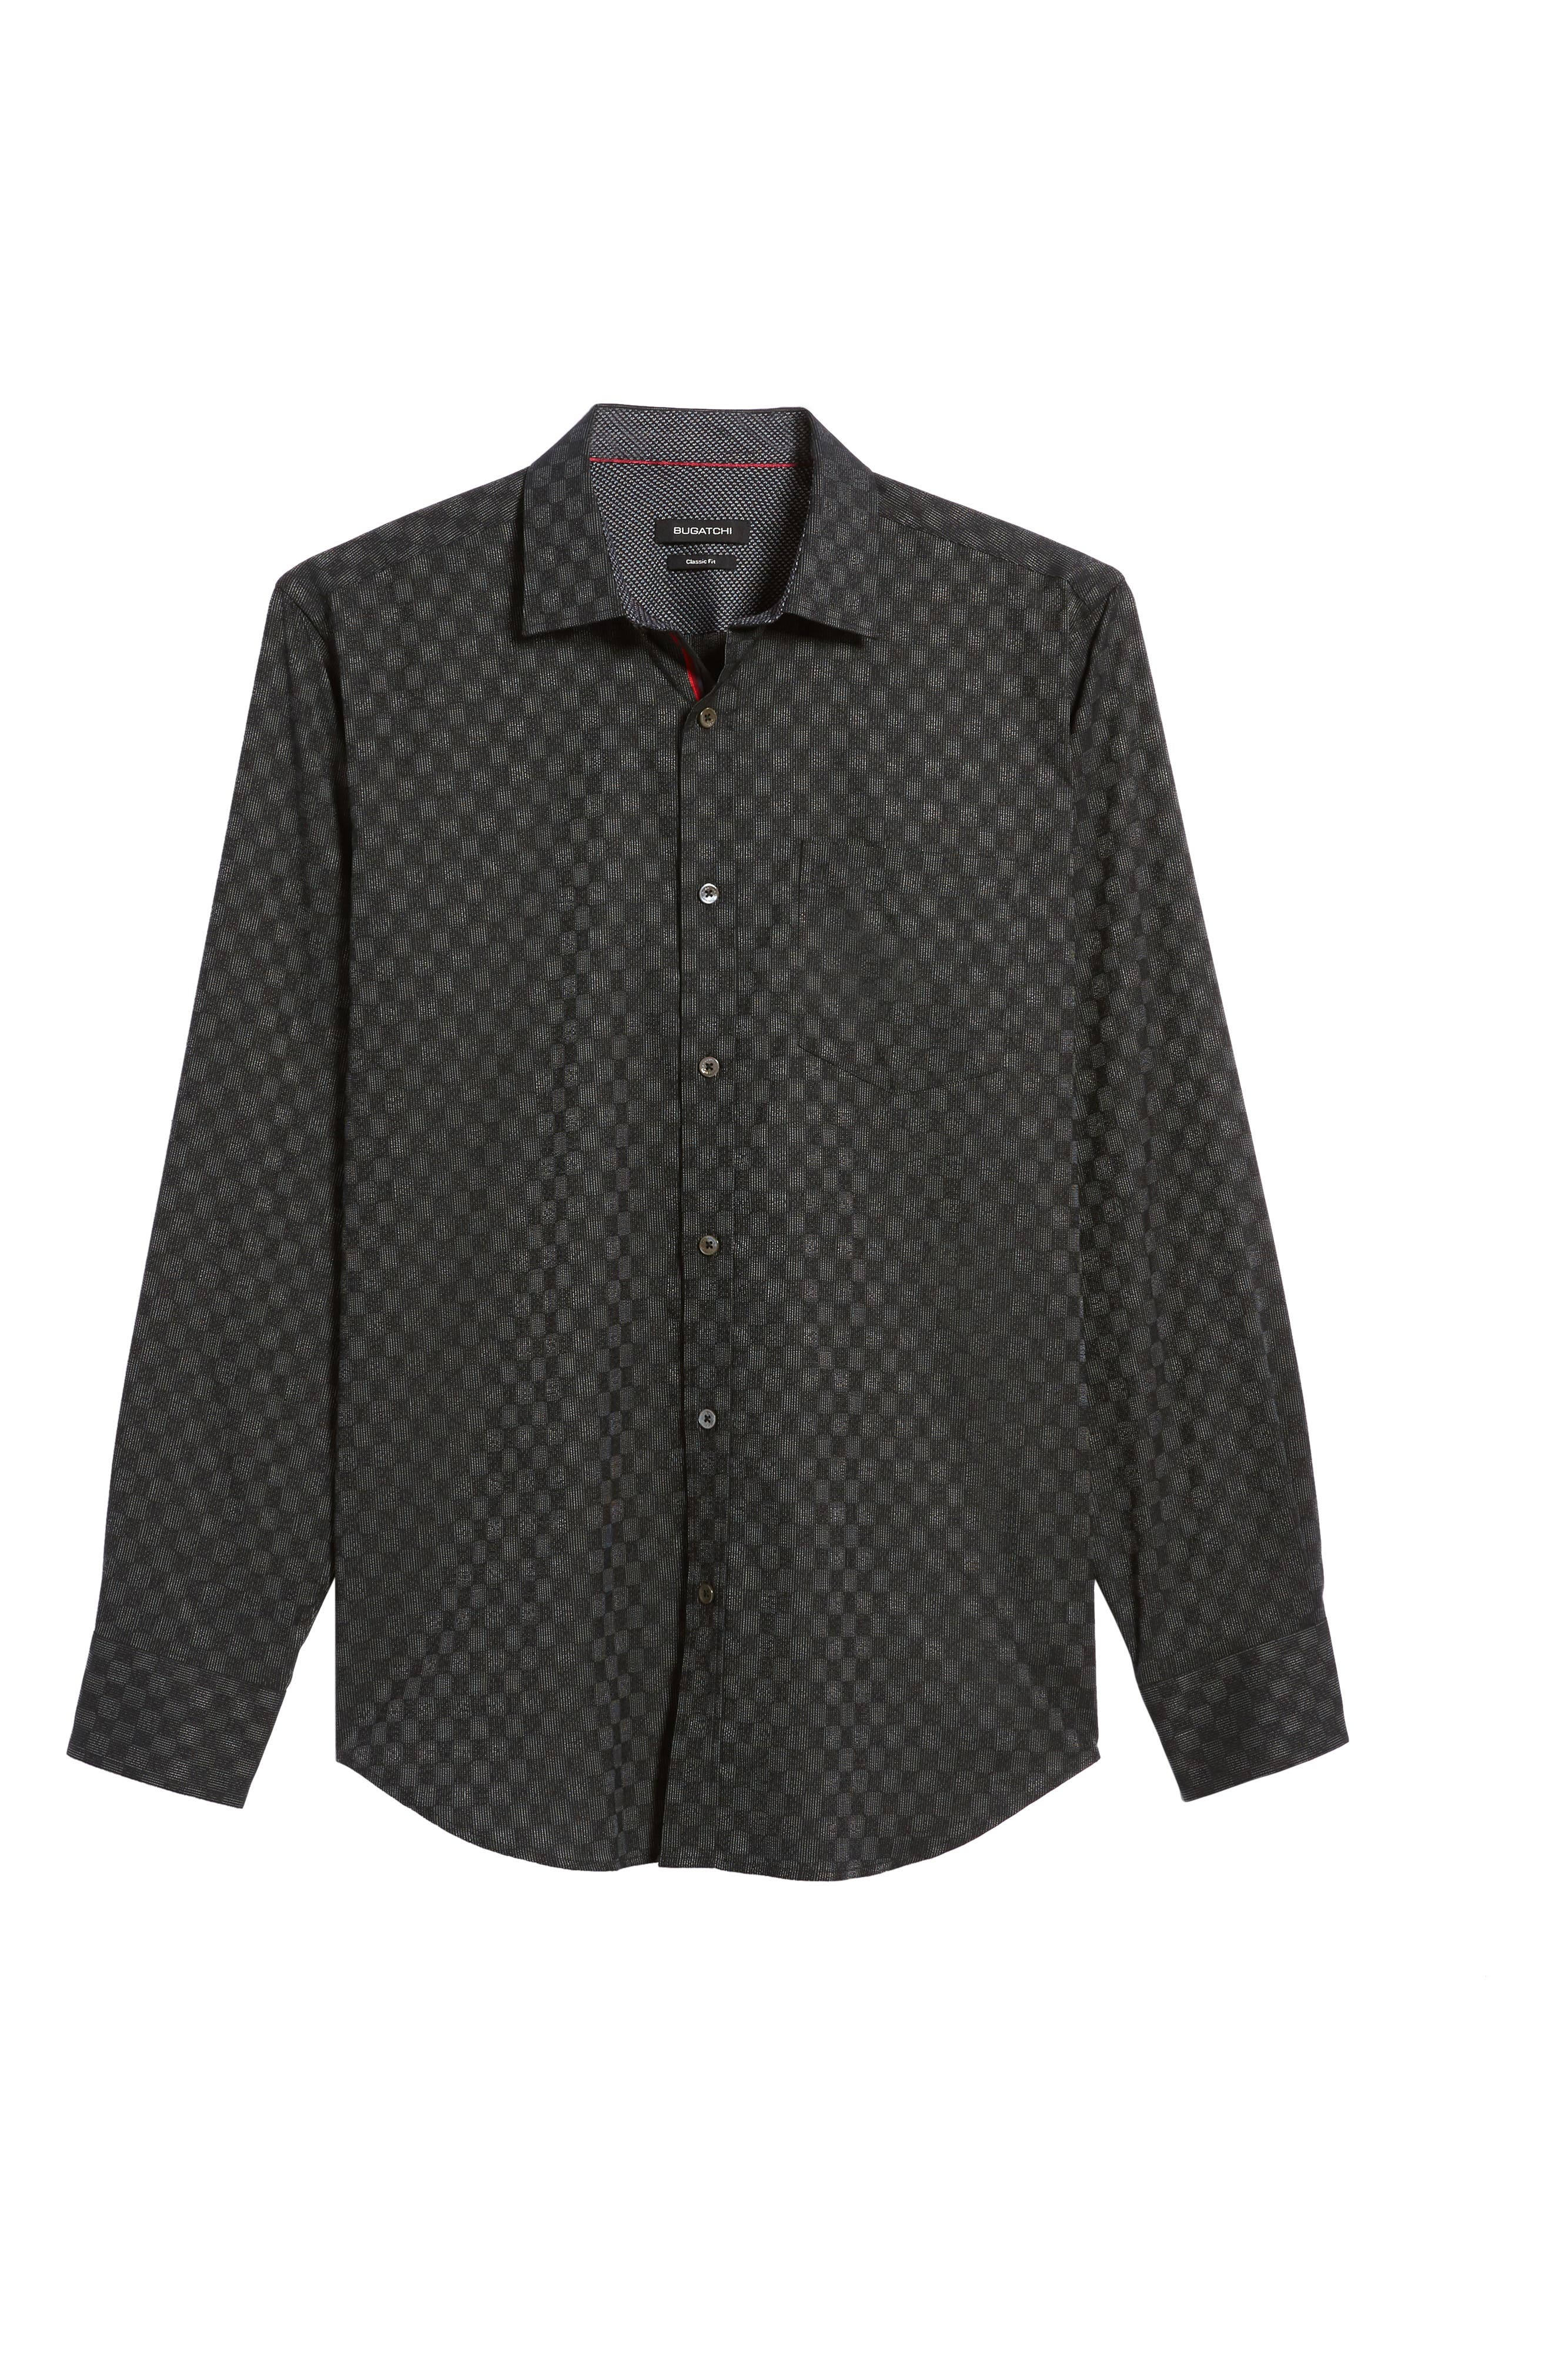 Classic Fit Abstract Dot Print Sport Shirt,                             Alternate thumbnail 6, color,                             Black